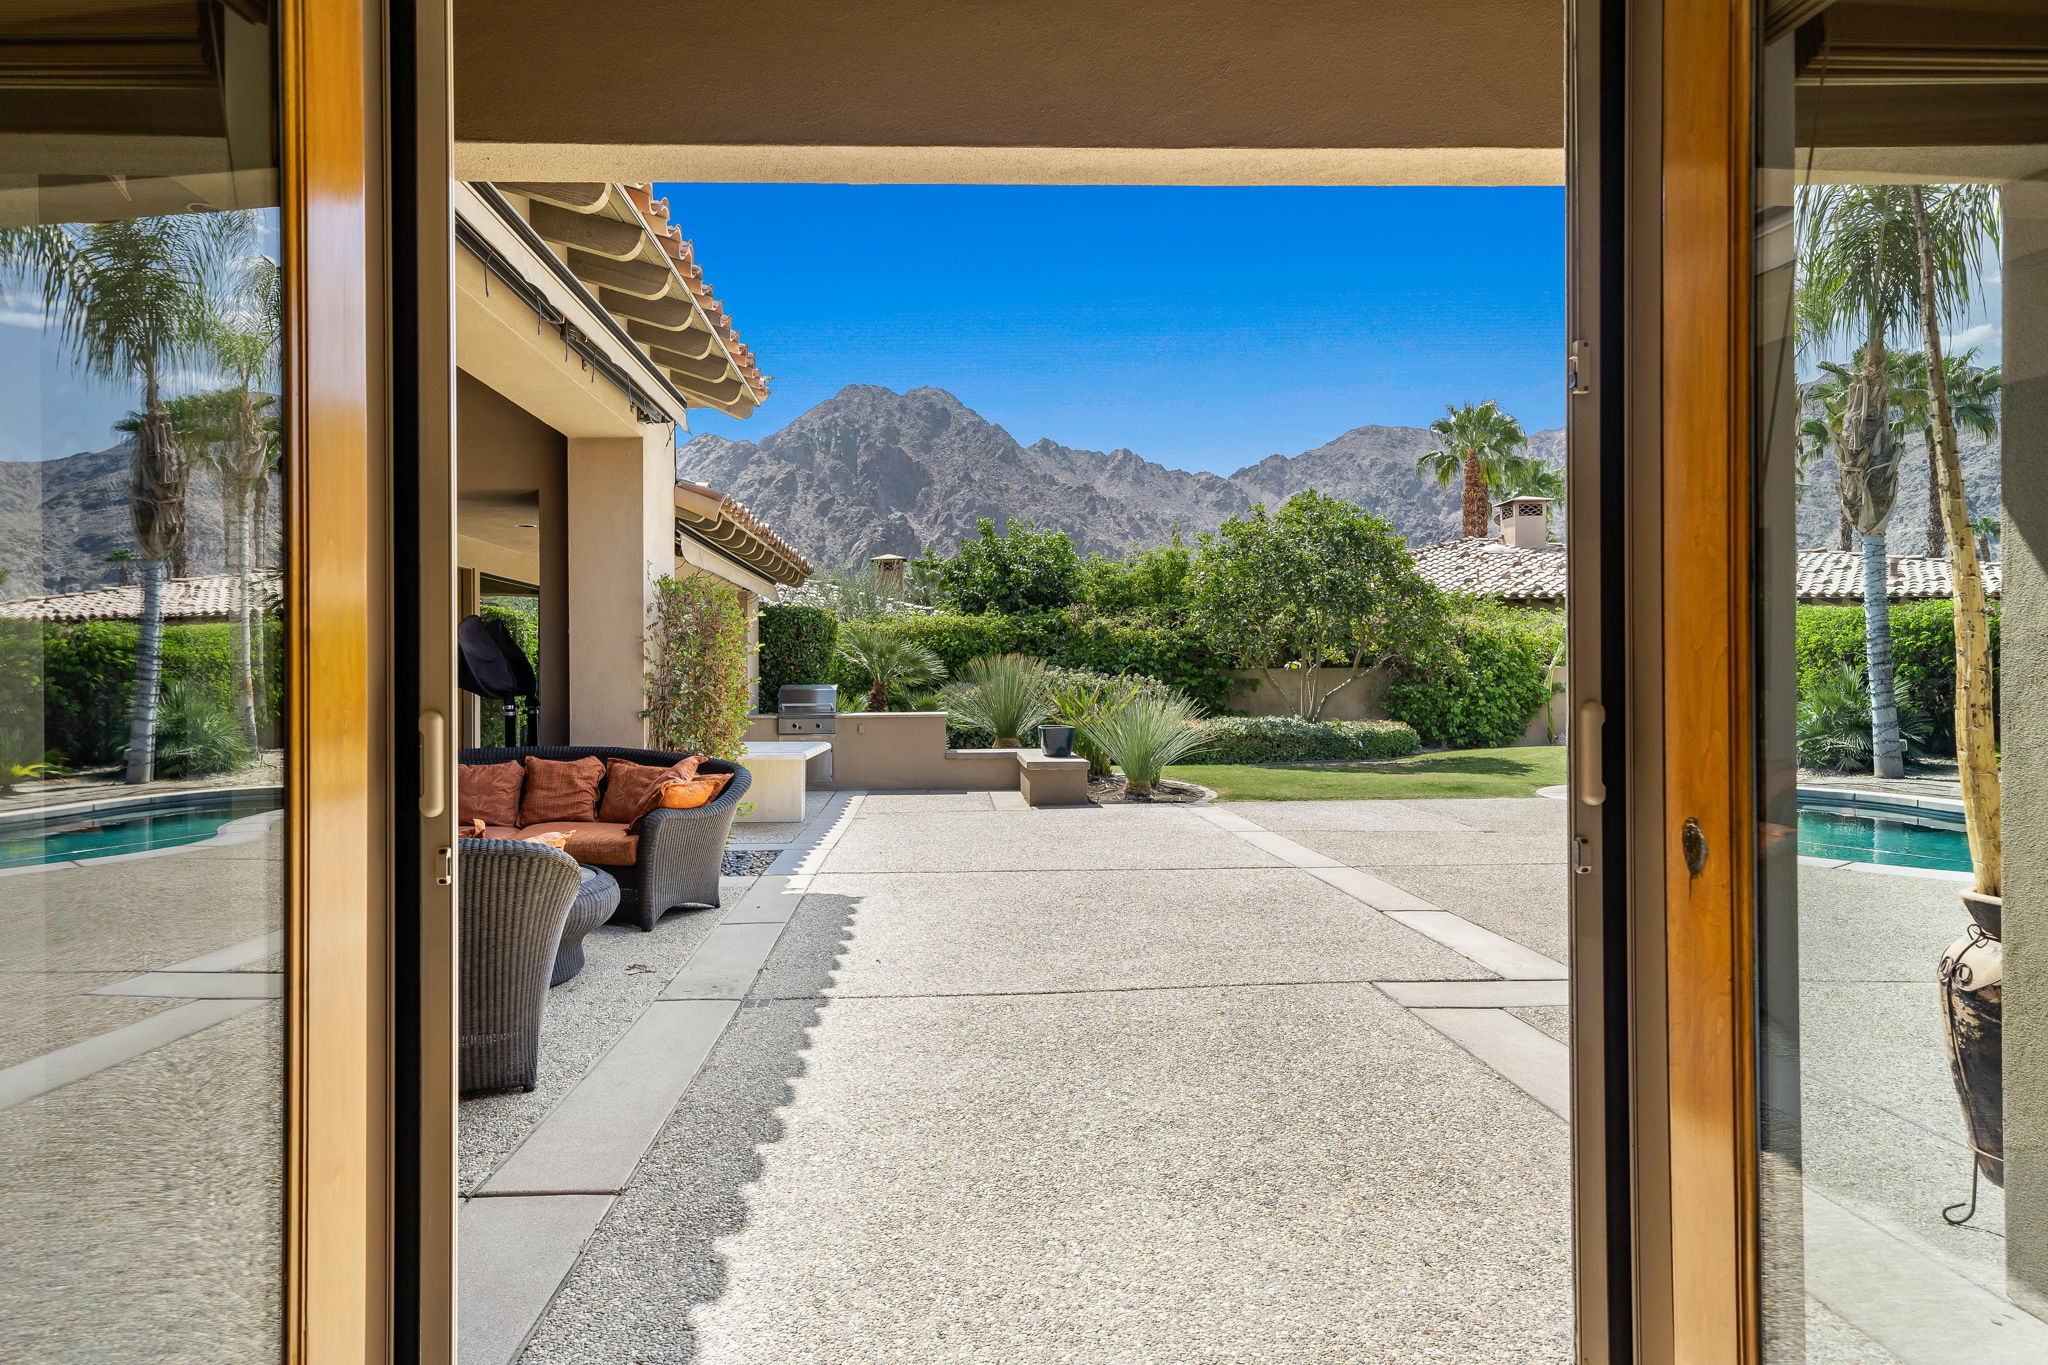 French Doors south from Master Bedroom